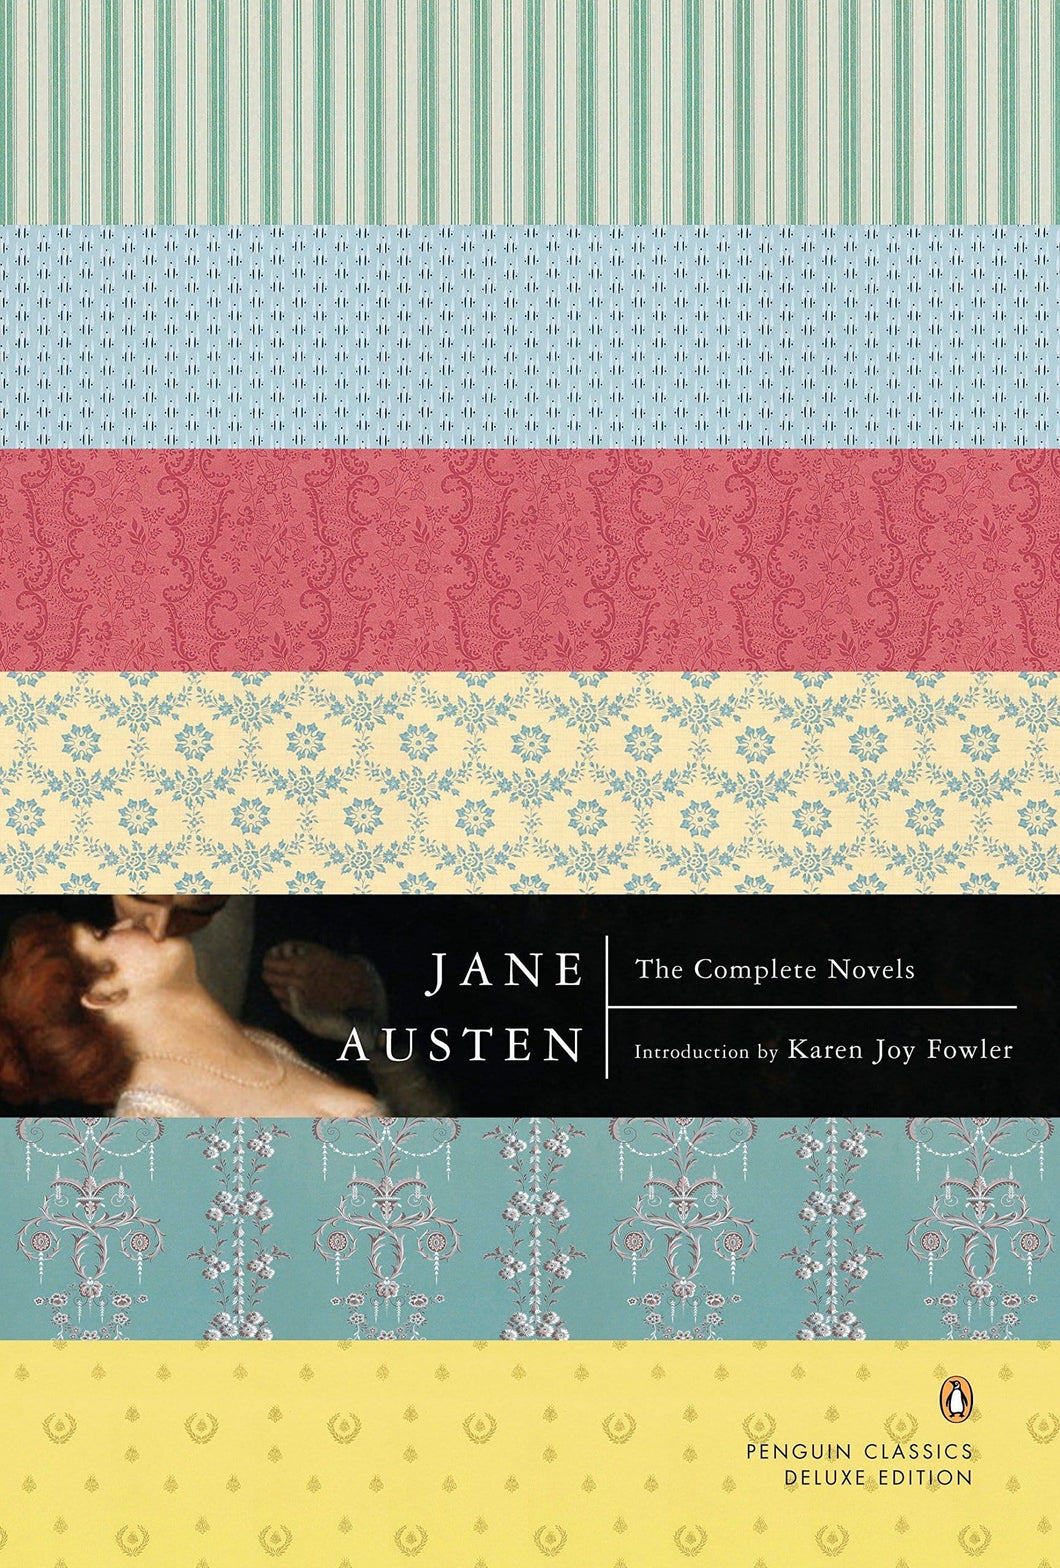 The Complete Jane Austen Novels